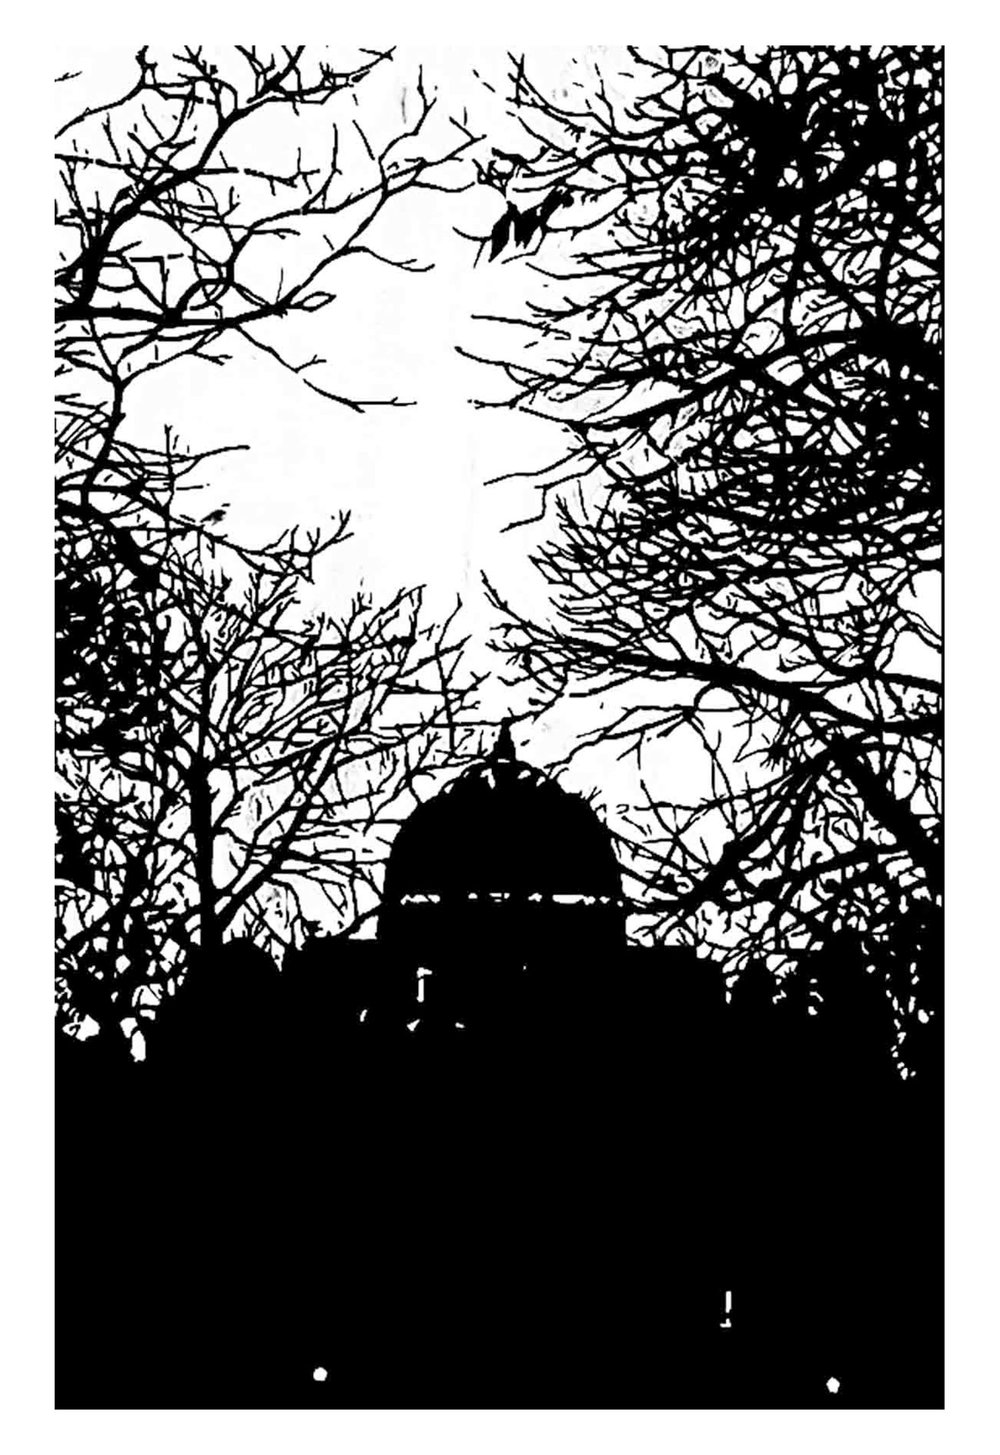 Greenwich Park VII Woodcut - 45cm x 30cm - 2016 (Edition of 25)